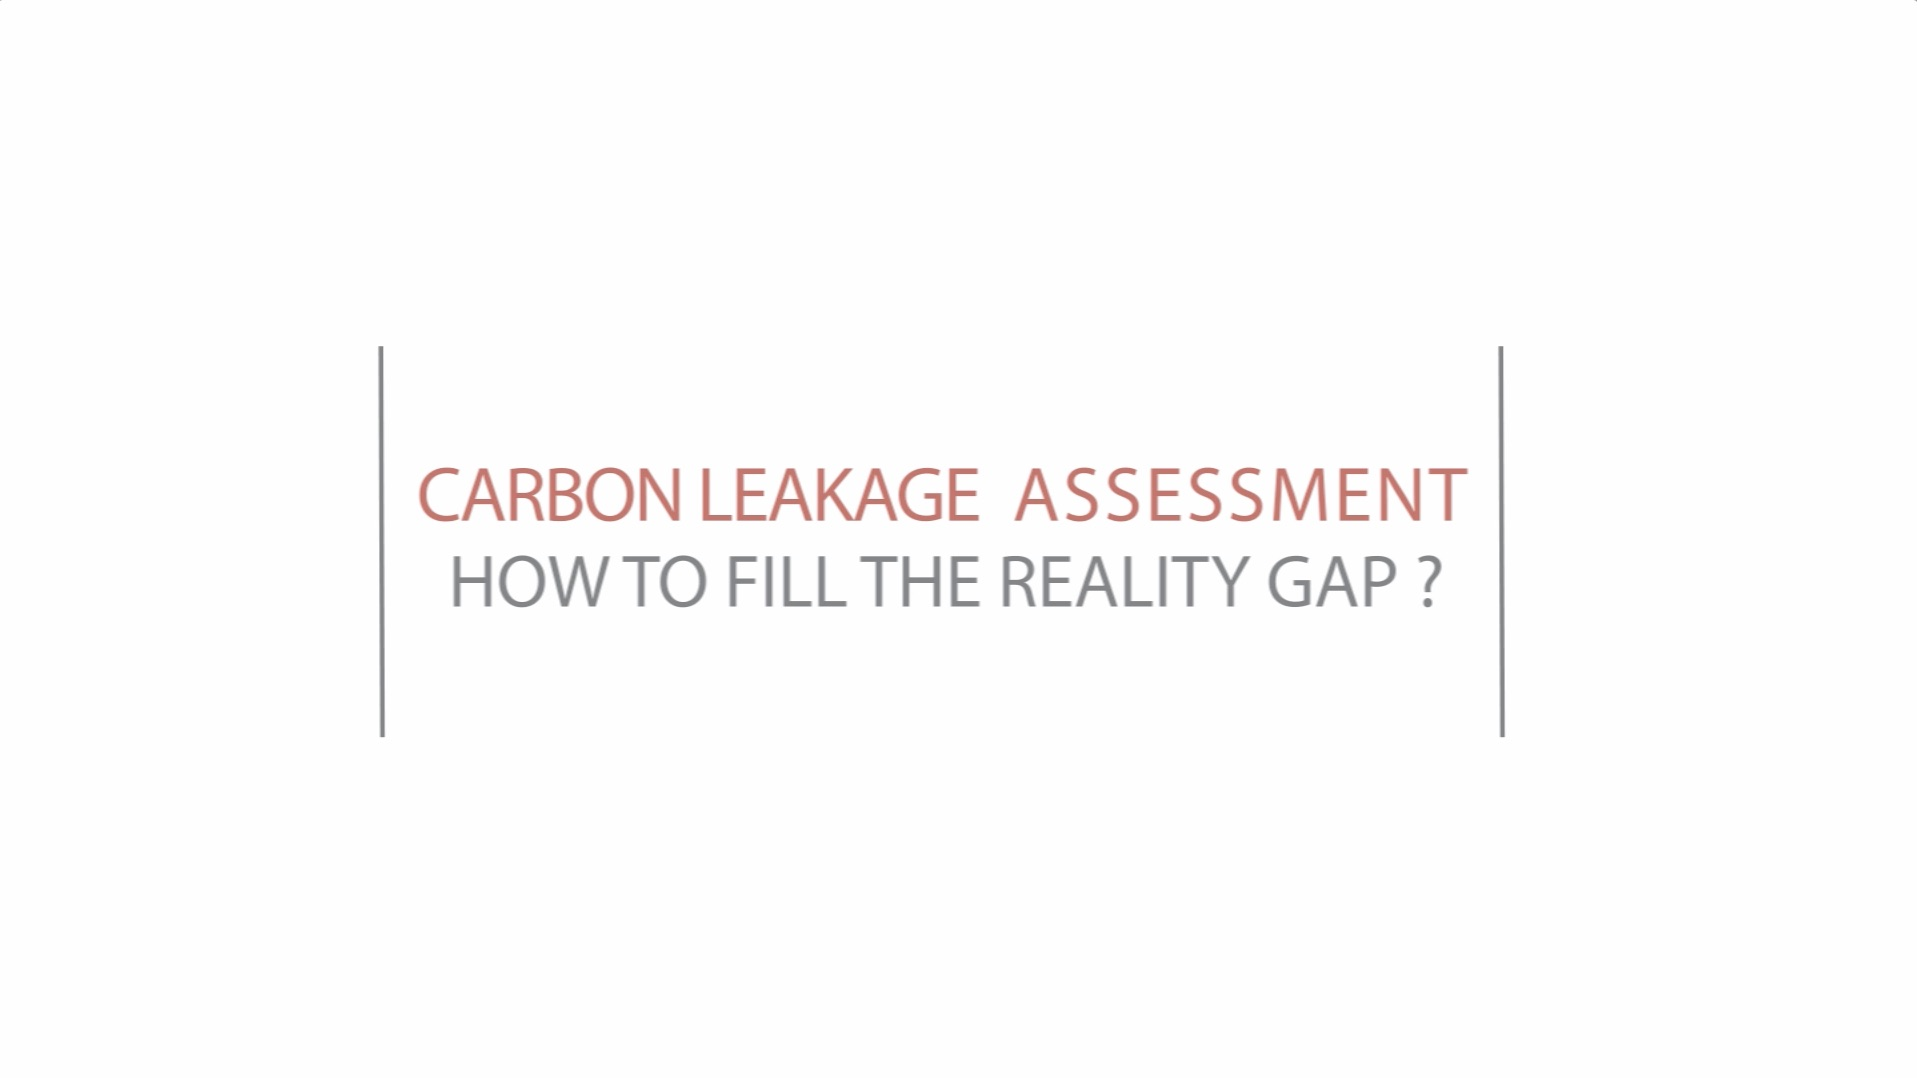 Carbon leakage assessment